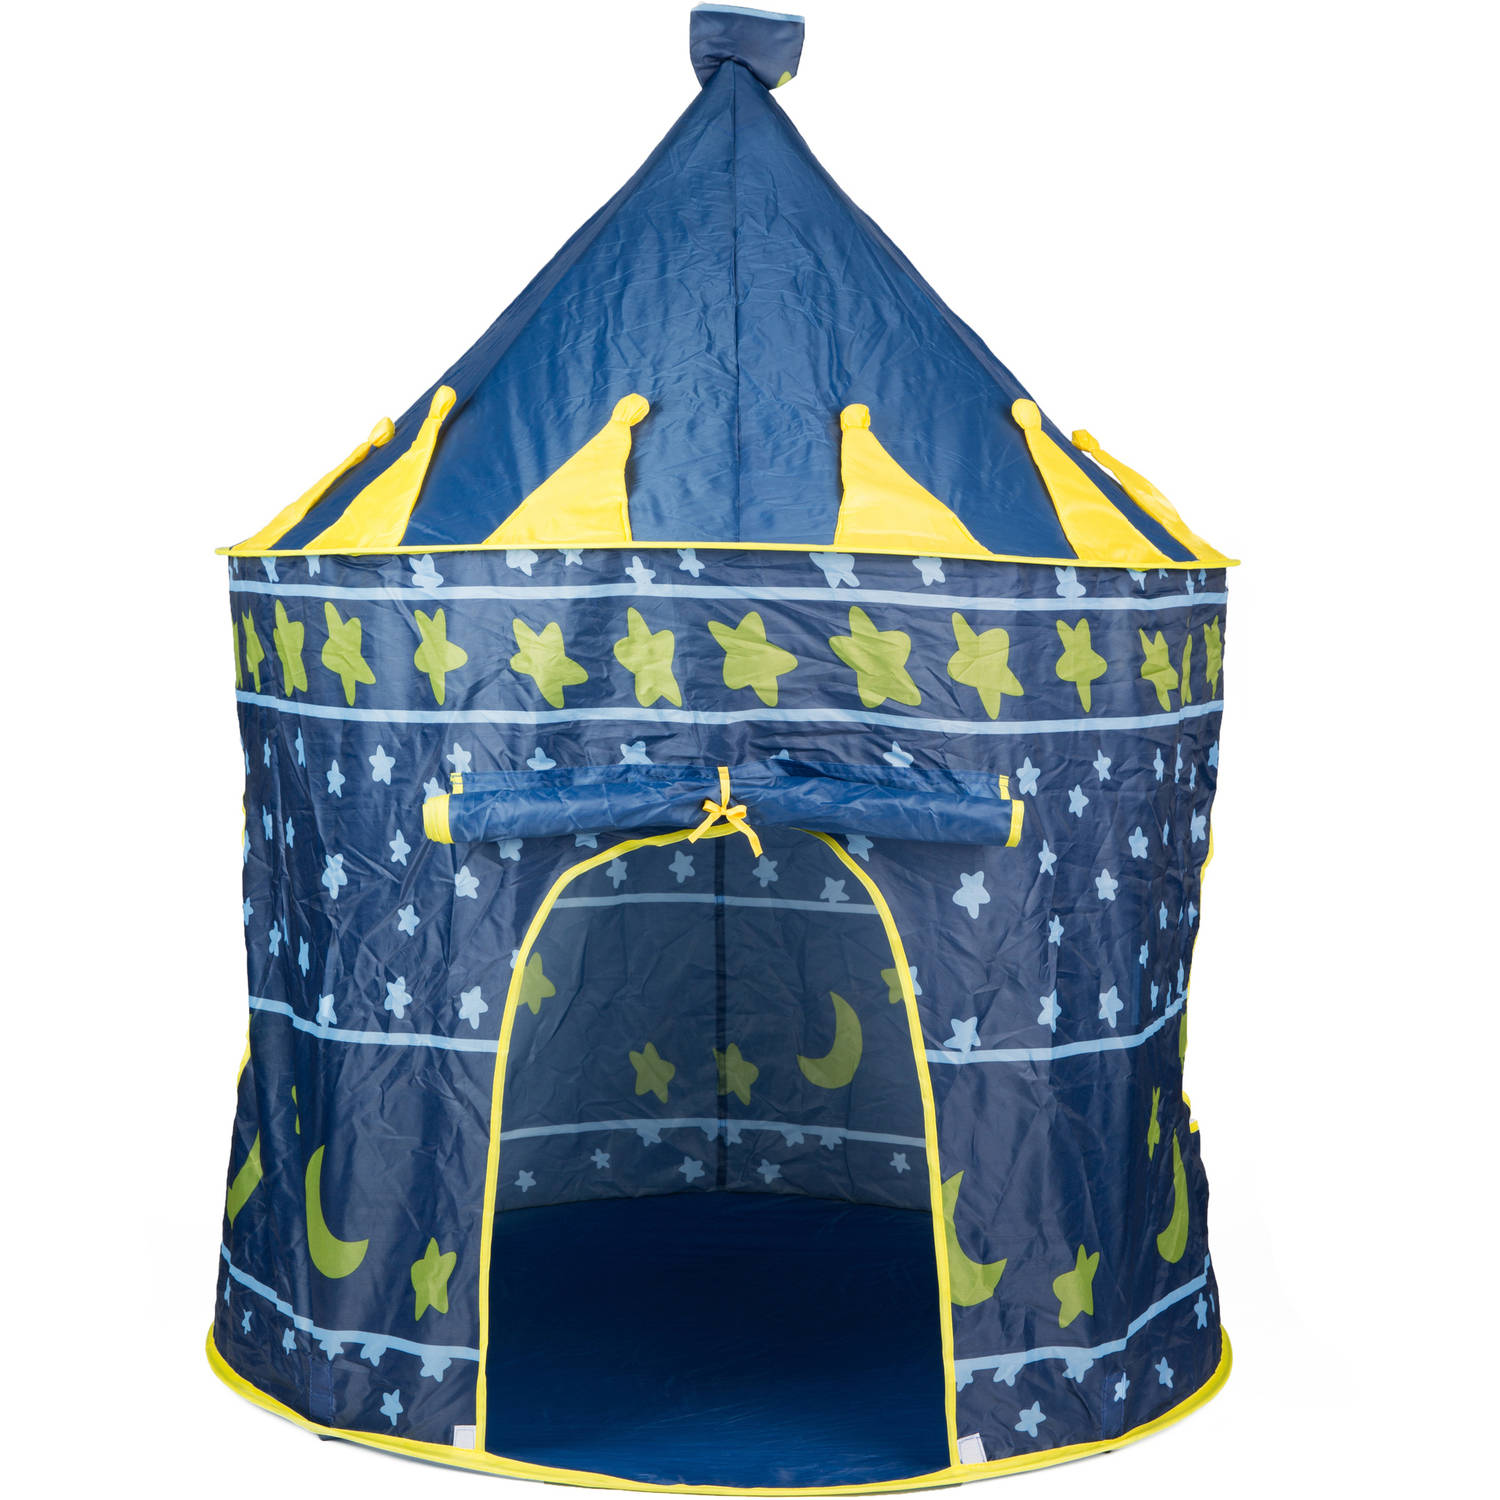 Kayata Mongolian-Style Tent with Stars and Moon, Blue